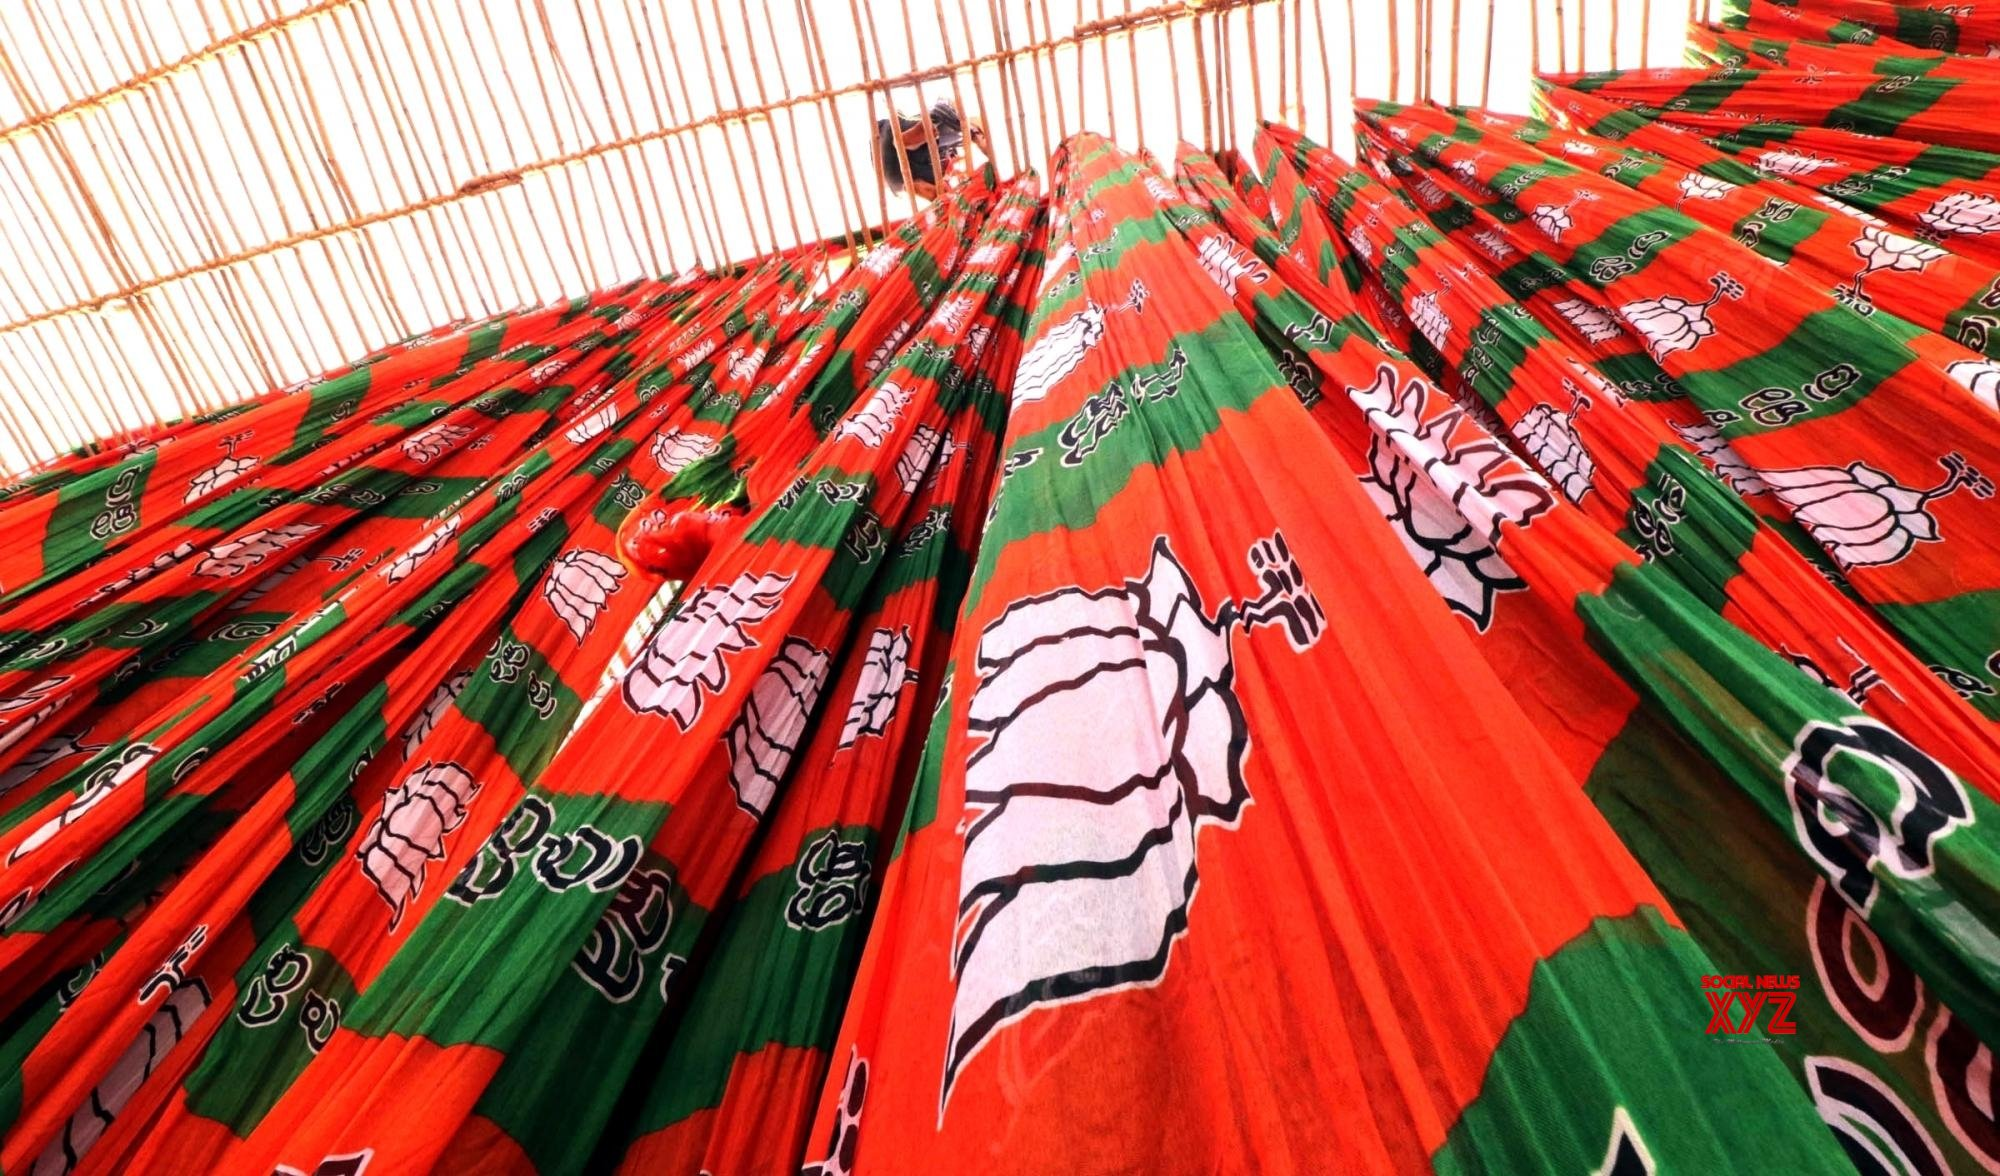 Guj local polls: BJP wins Bhavnagar, Jamnagar, Rajkot, Vadodara